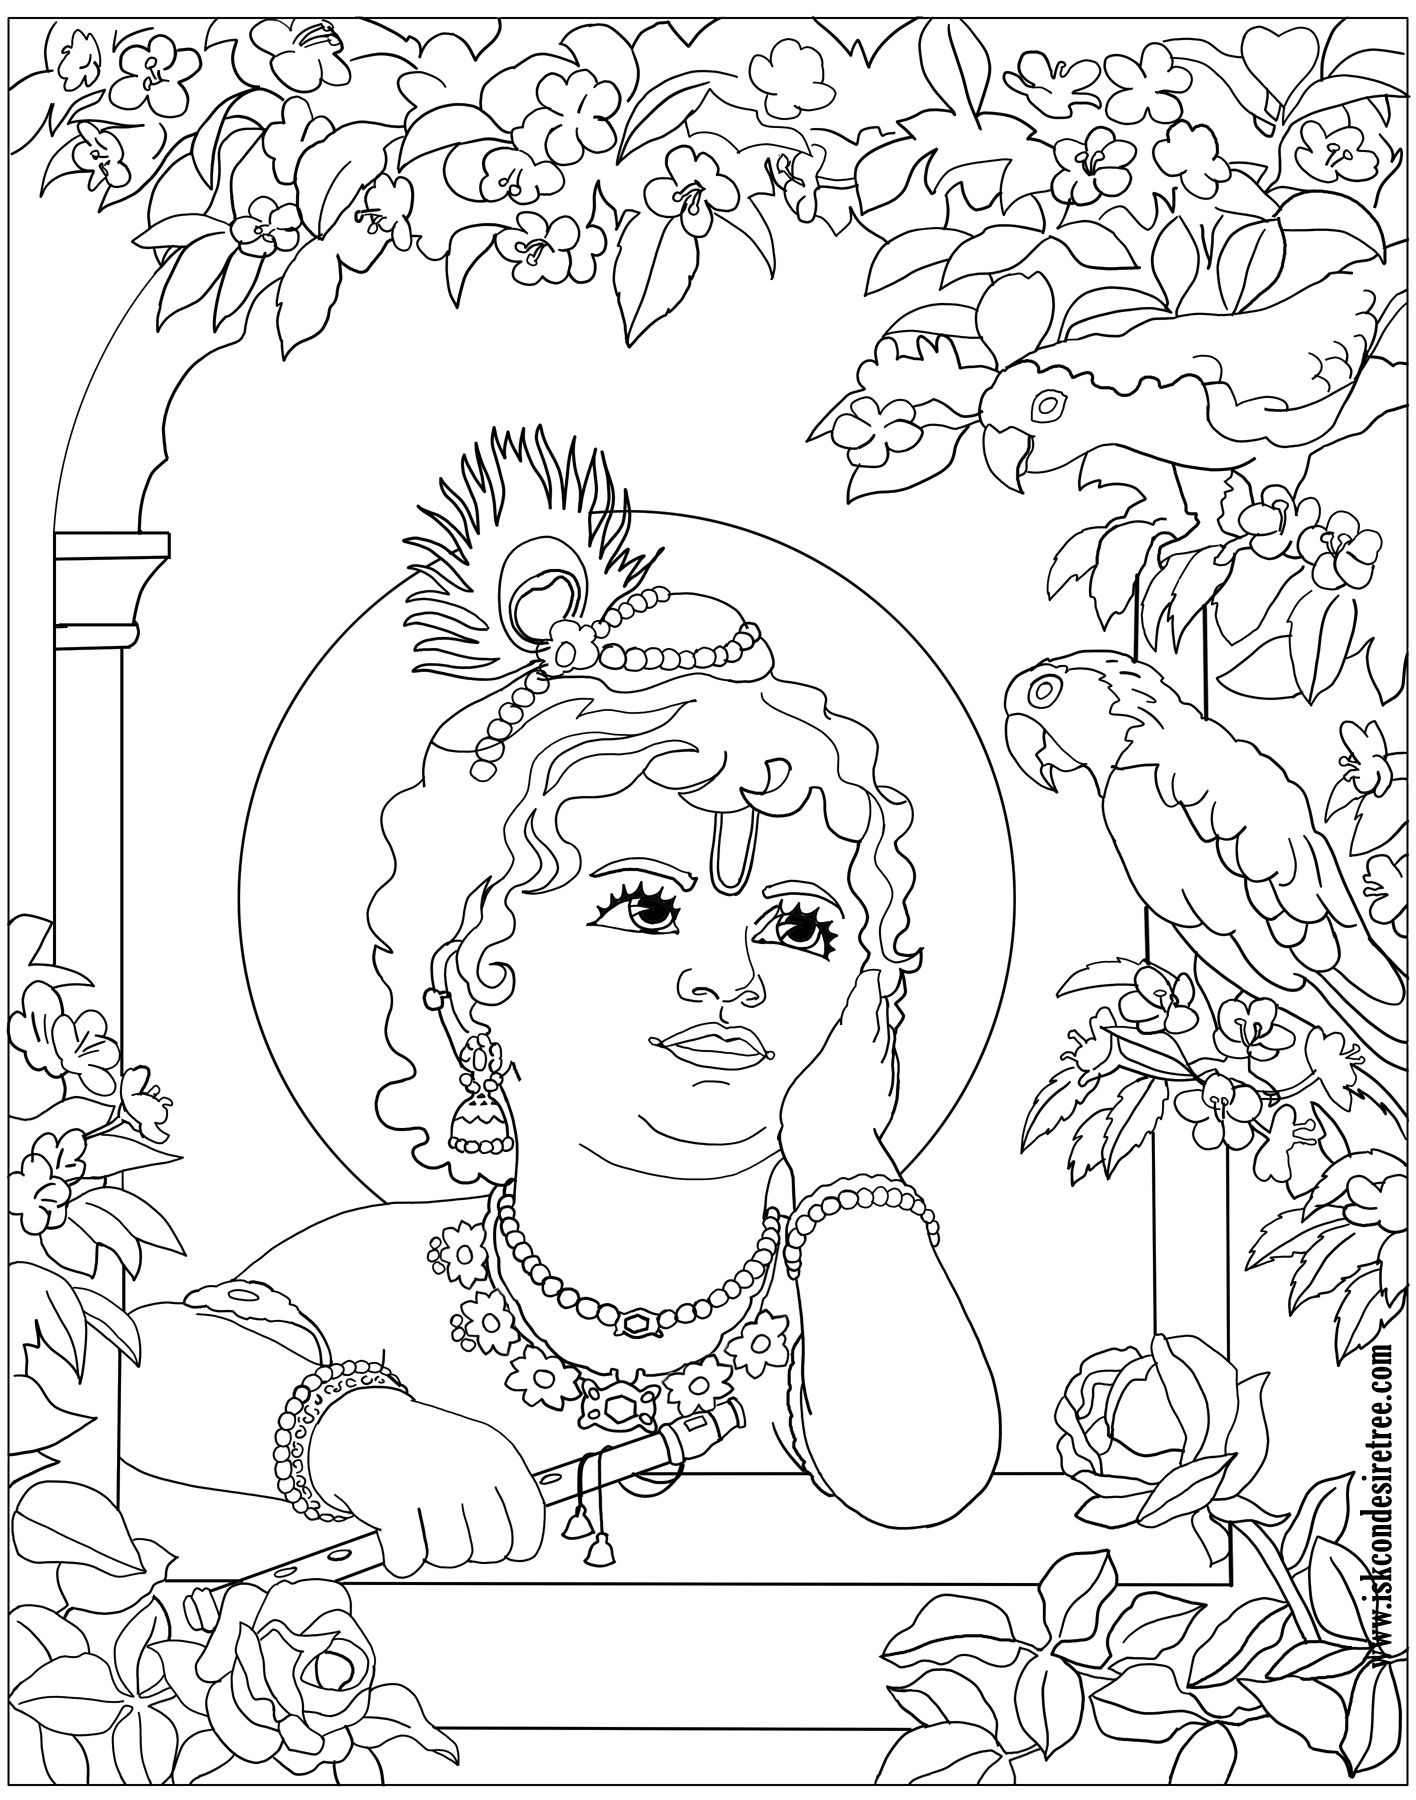 iskcon krishna coloring pages atkinson flowers - Baby Krishna Images Coloring Pages